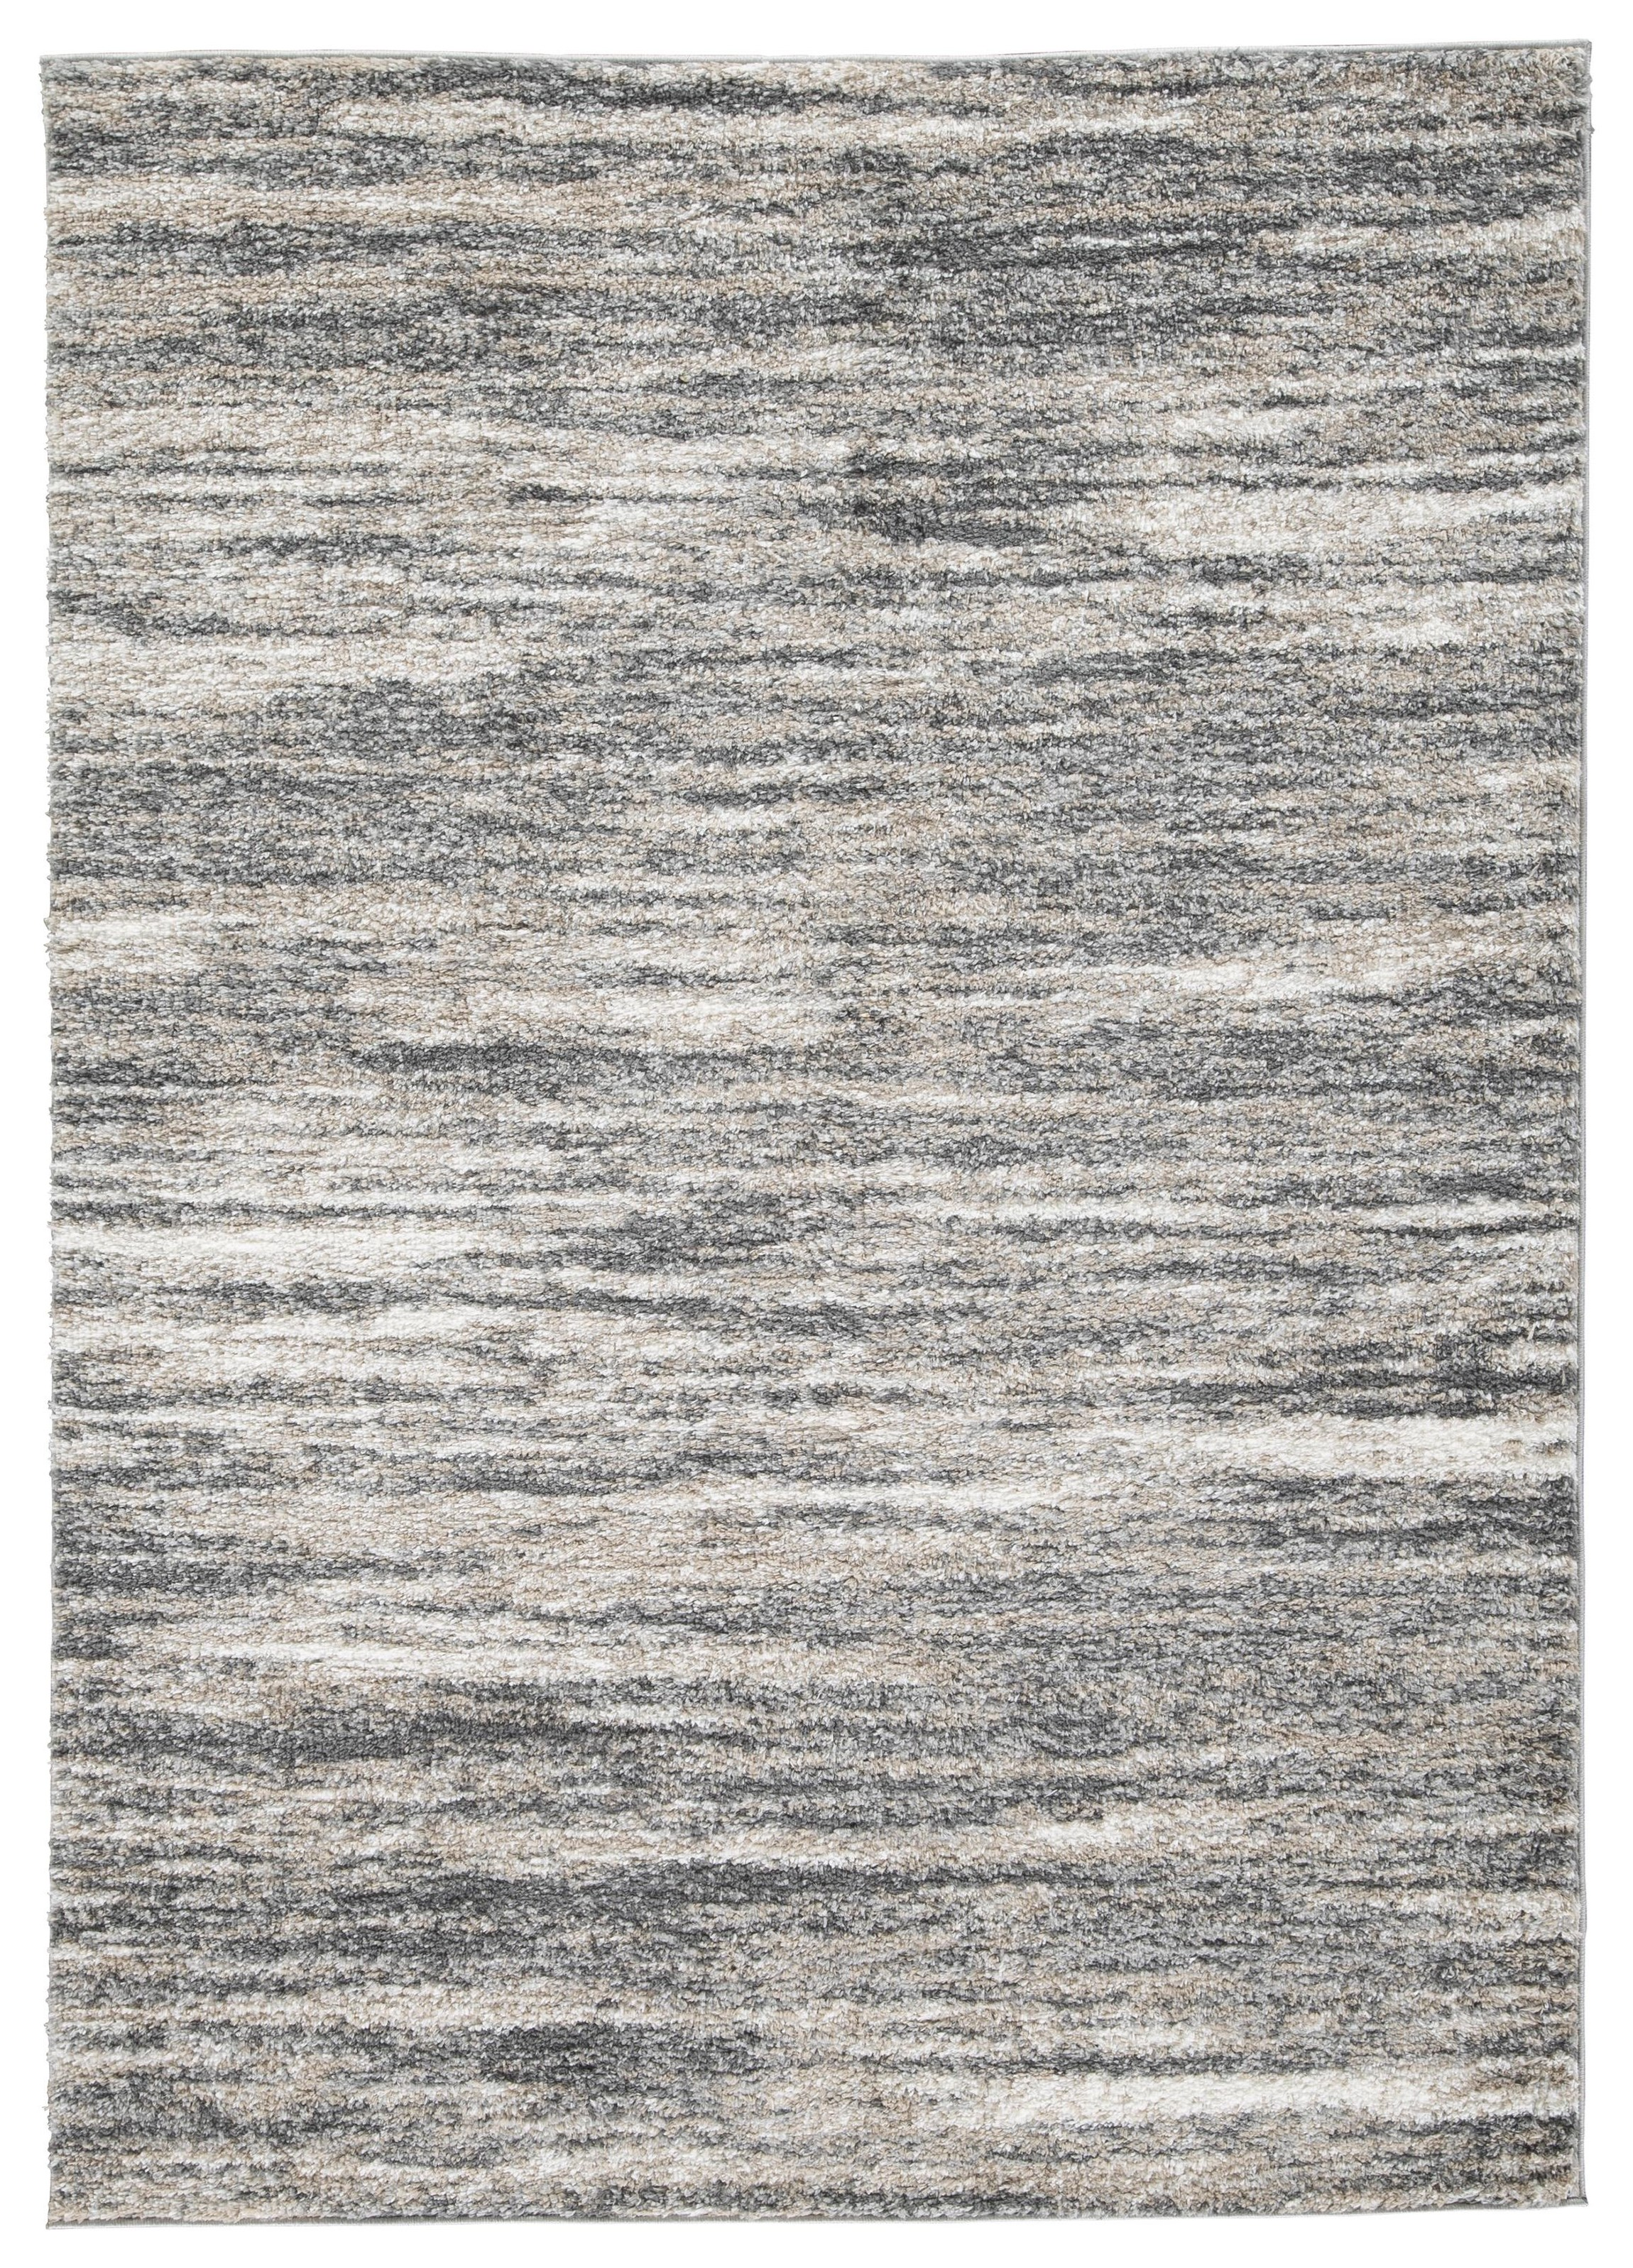 Gizela 5x7 Area Rug by Signature Design by Ashley at Sam Levitz Outlet